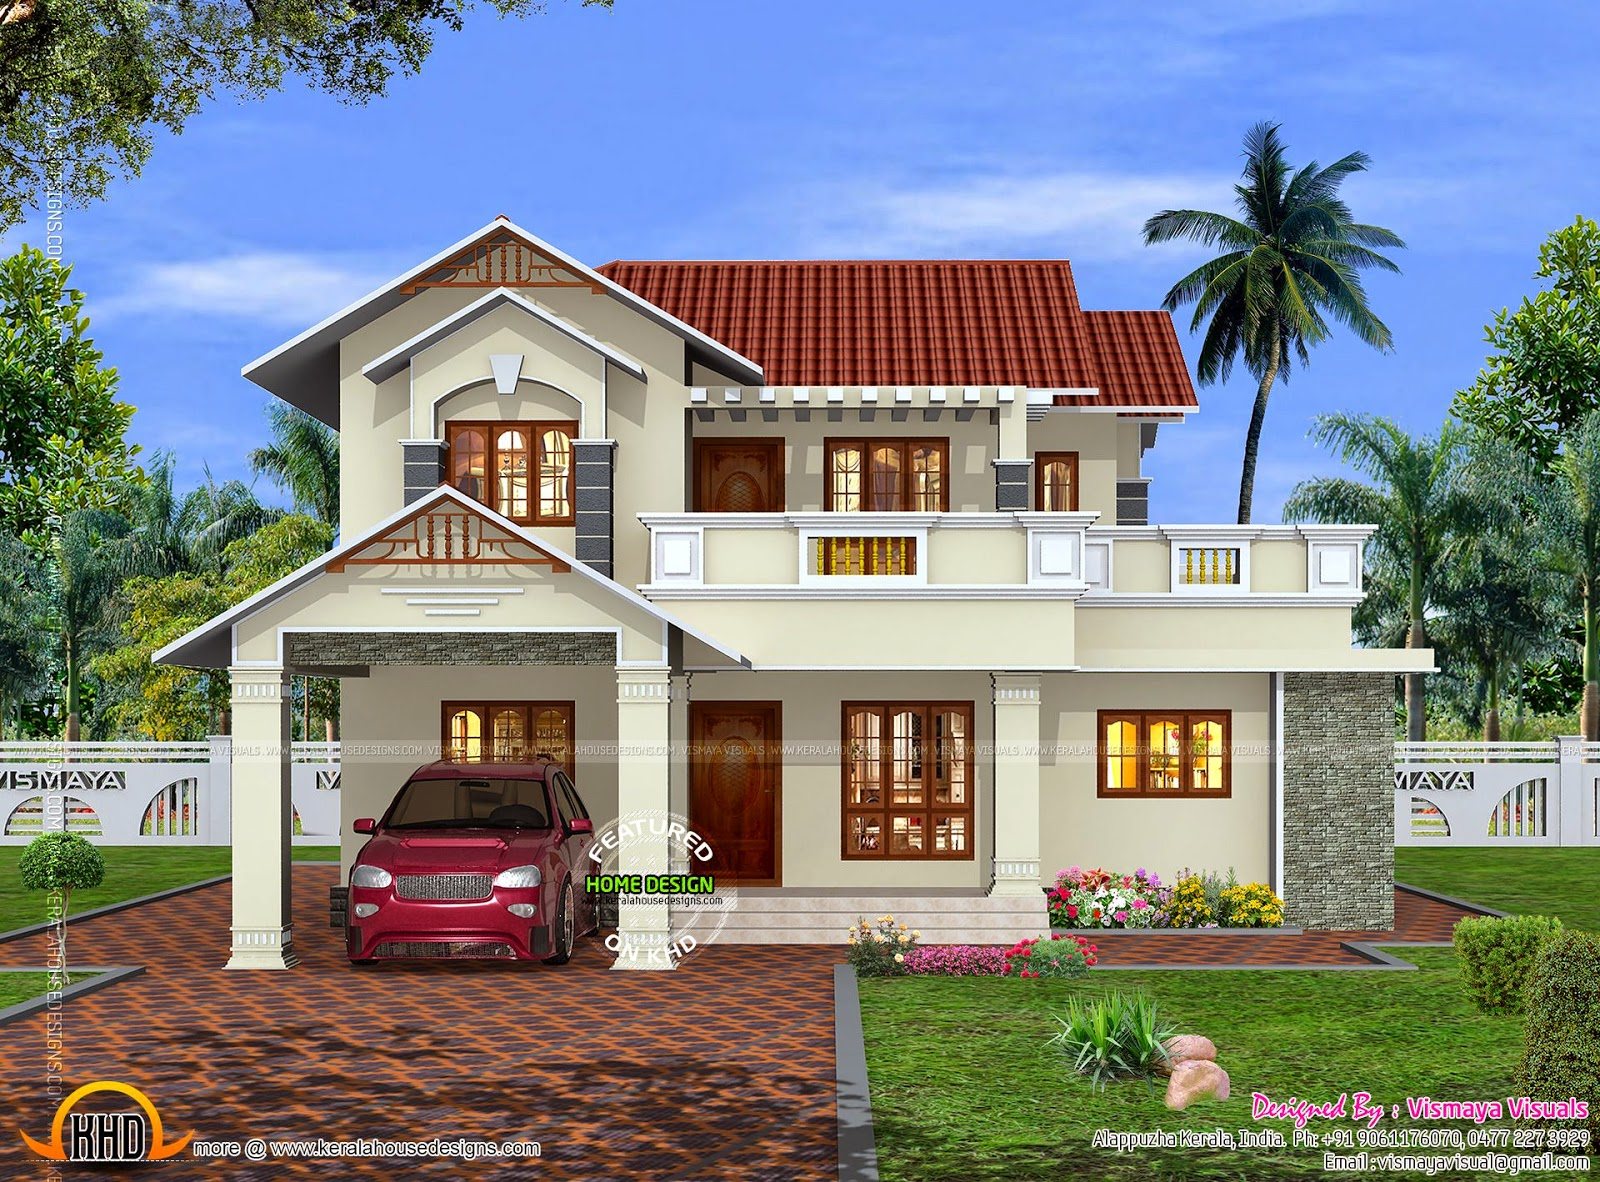 Beautiful Home Exterior Designs Contemplate Today Some Images Of